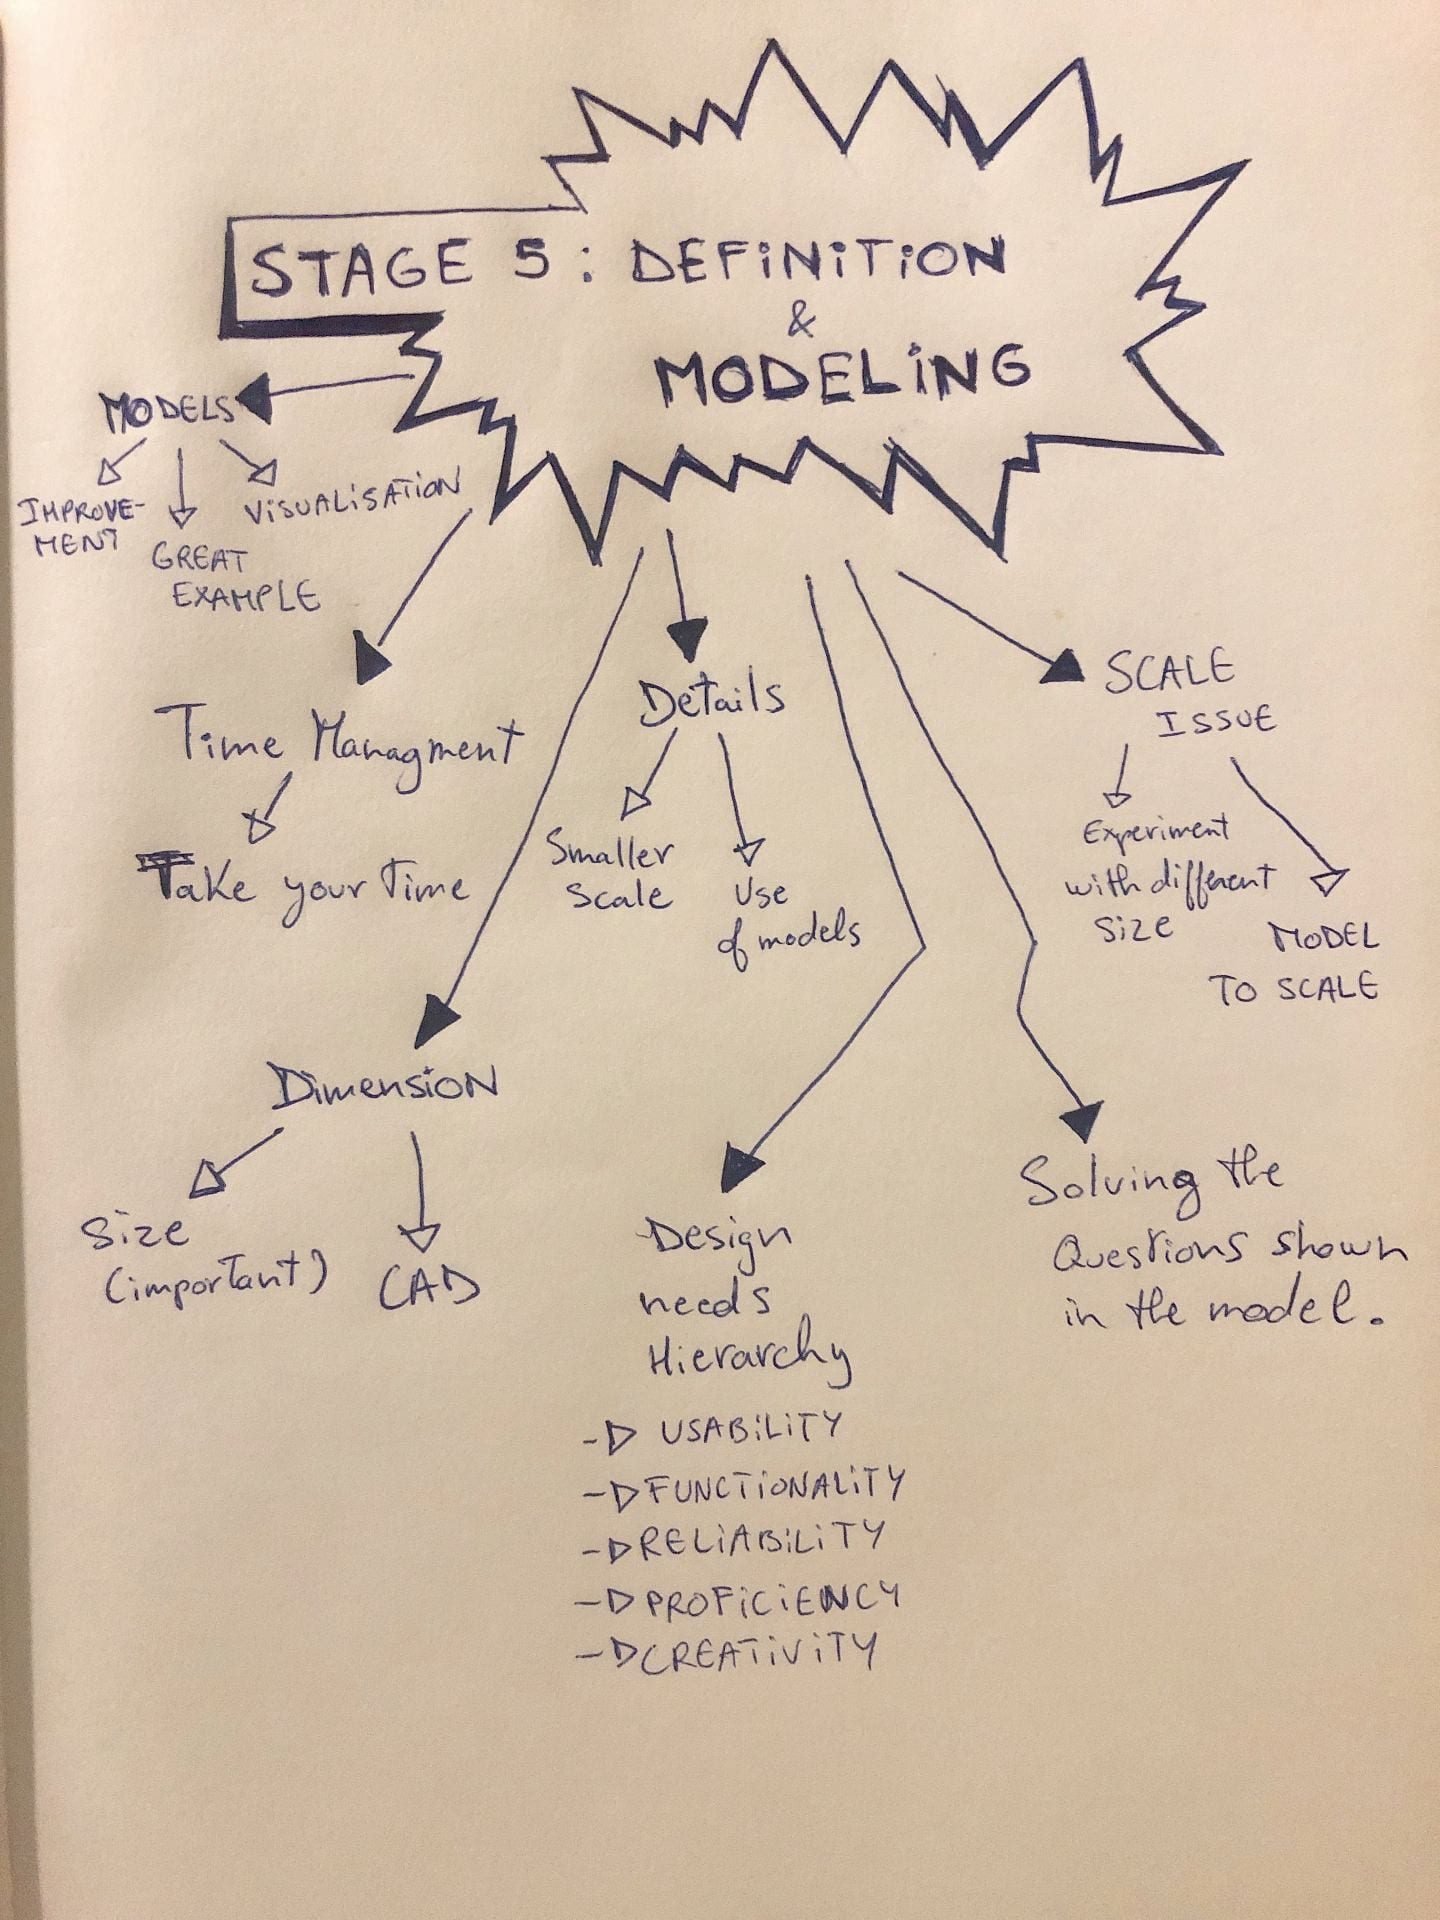 Assignment 18 Definition/Modeling stage Ch. 5